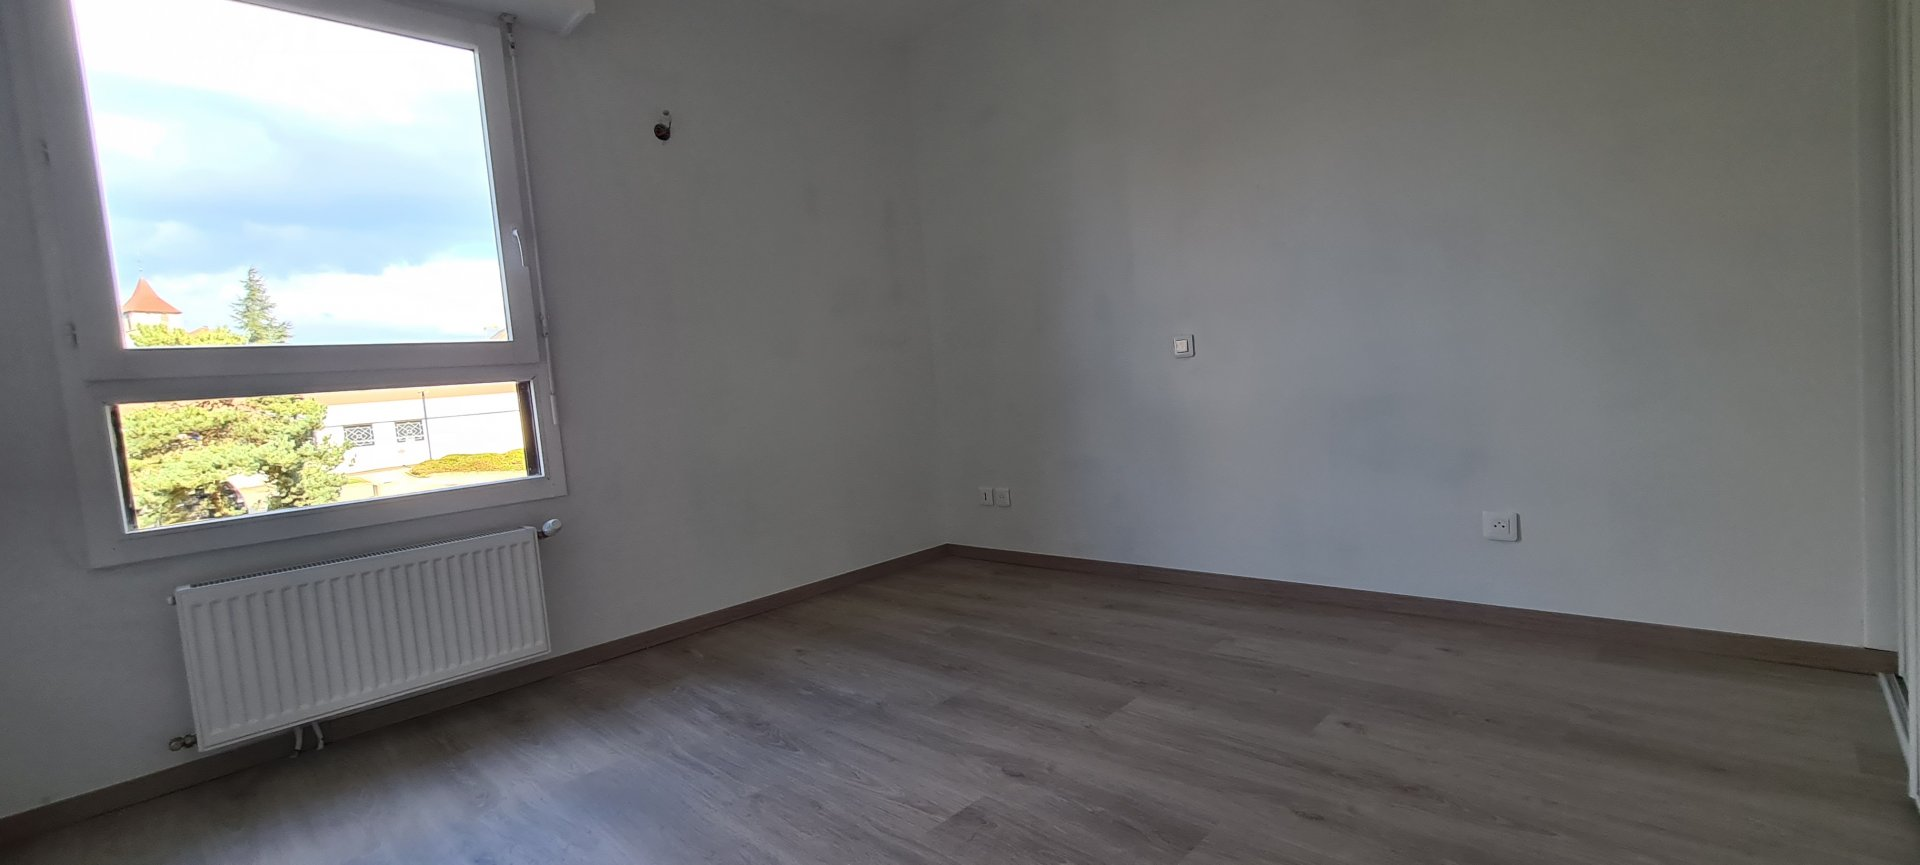 Appartement T3 hypercentre Poisy